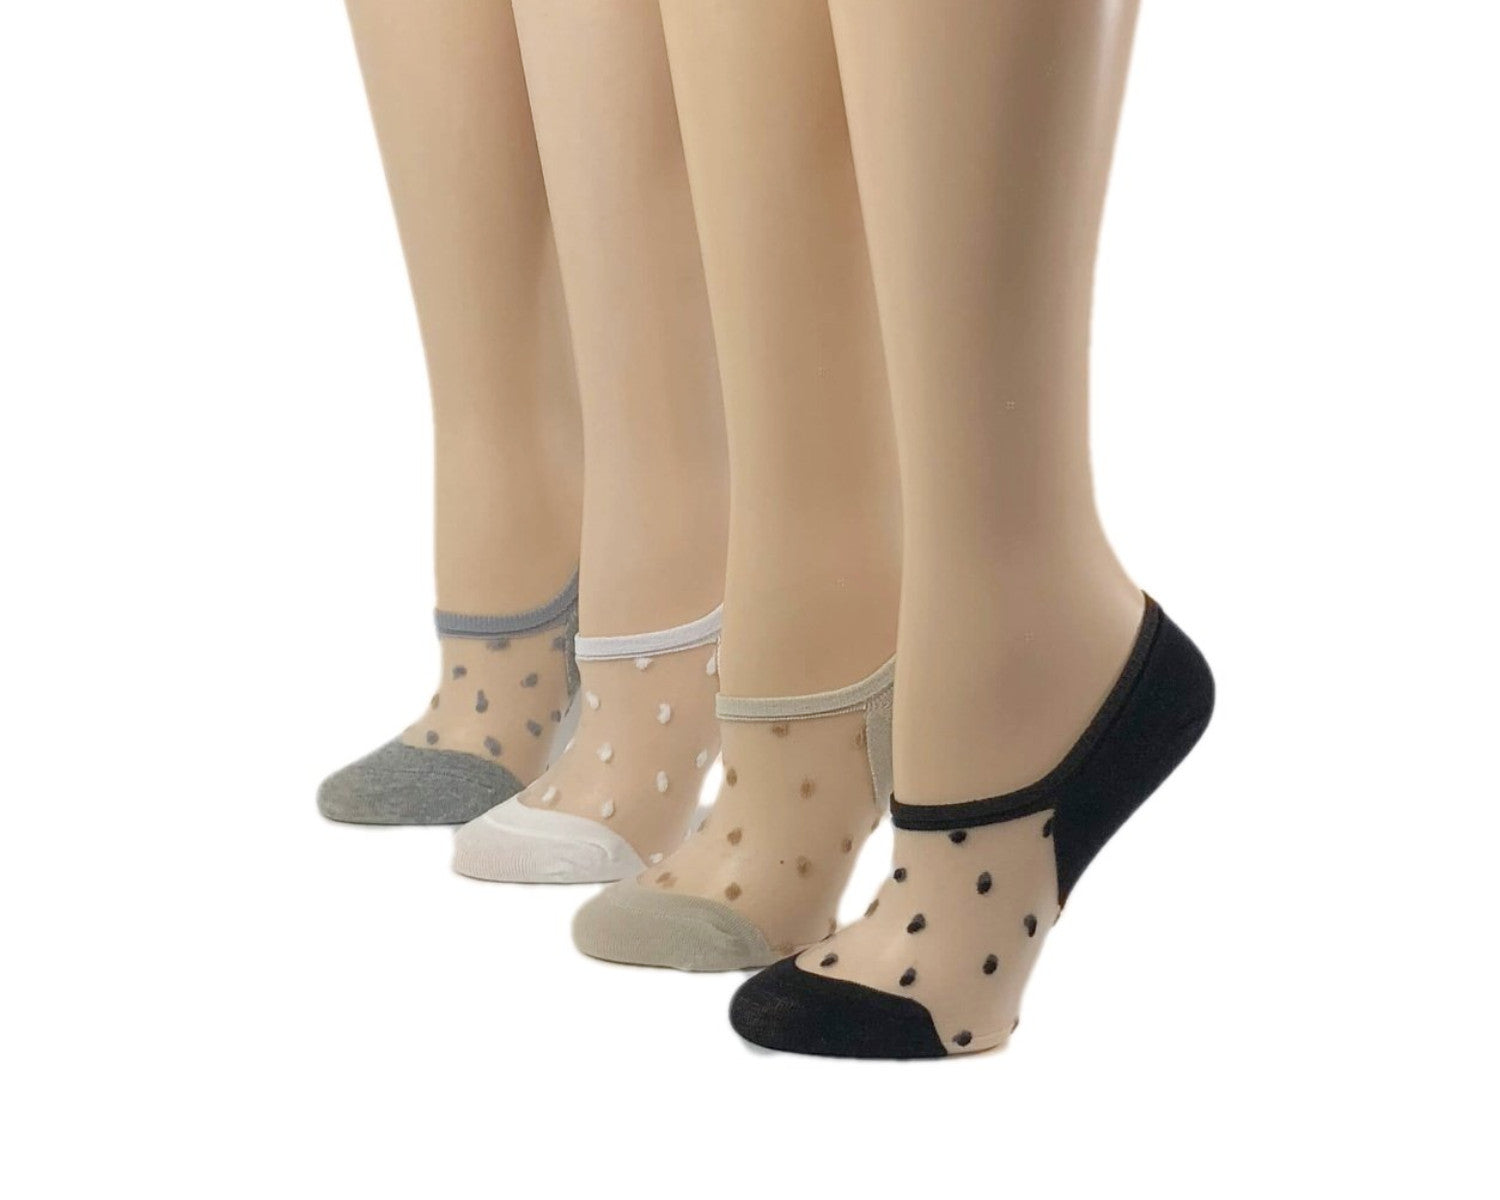 Cute Dotted Sheer Socks (Pack of 4 Pairs) - Global Trendz Fashion®